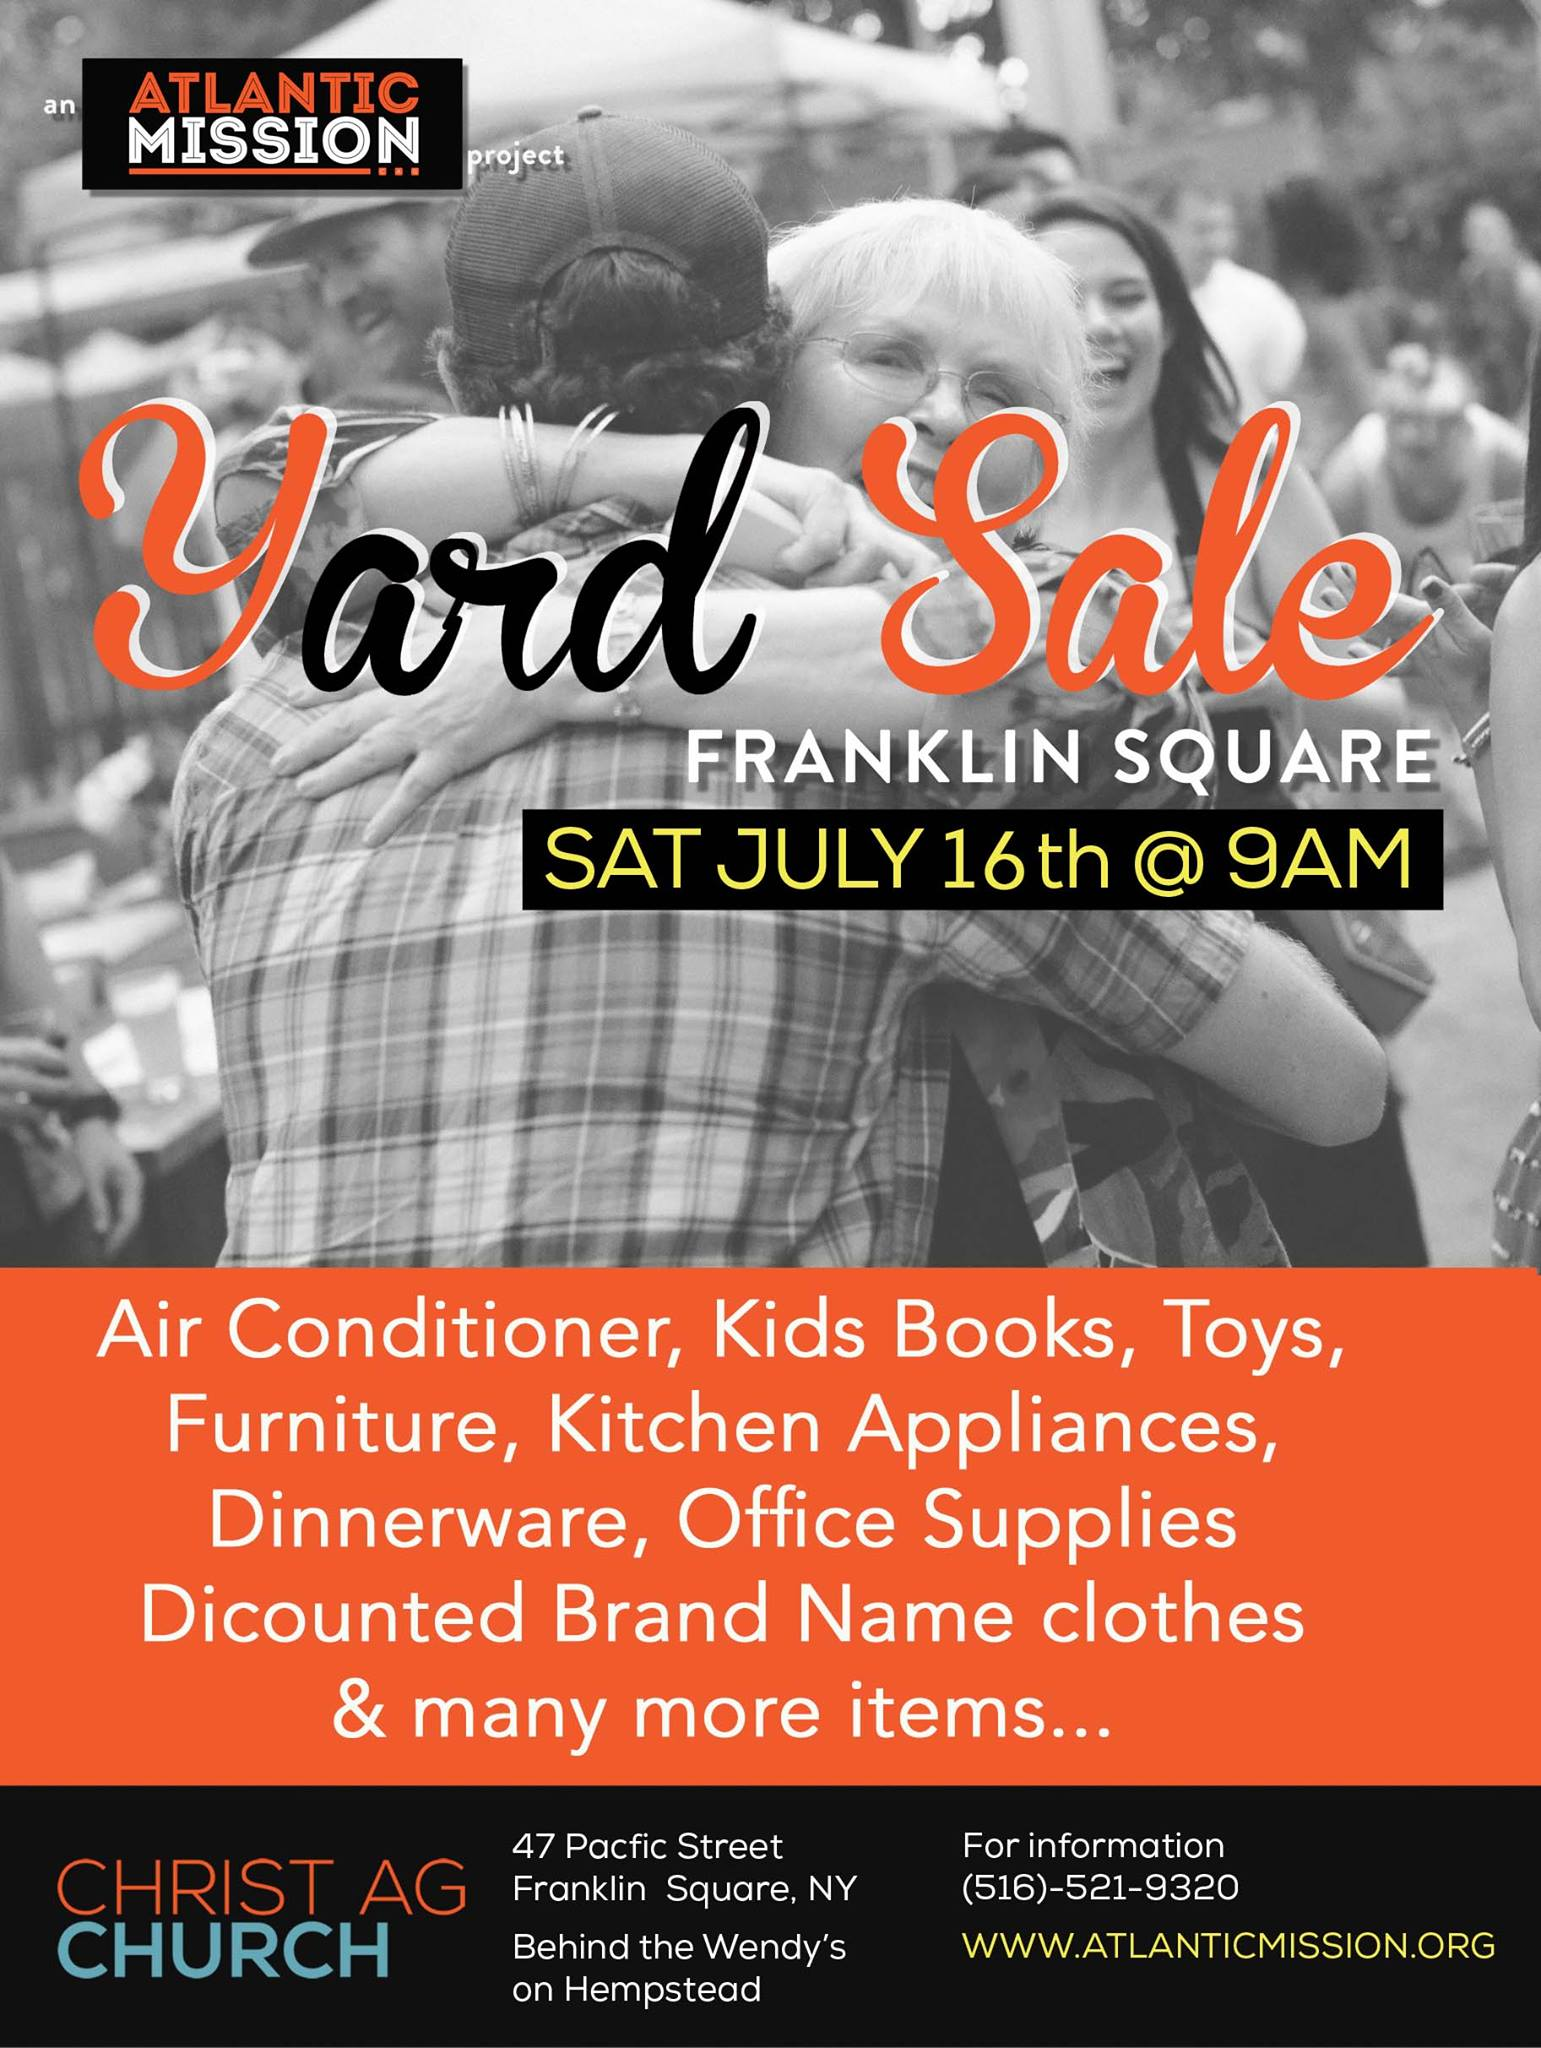 Dear Community & Friends we are excited to host our Summer Yard Sale event. Please bring family and friends all items must go for low prices. New unused clothes and kitchen items and many more. 16 Jul Sat 9 a.m-5 p.m